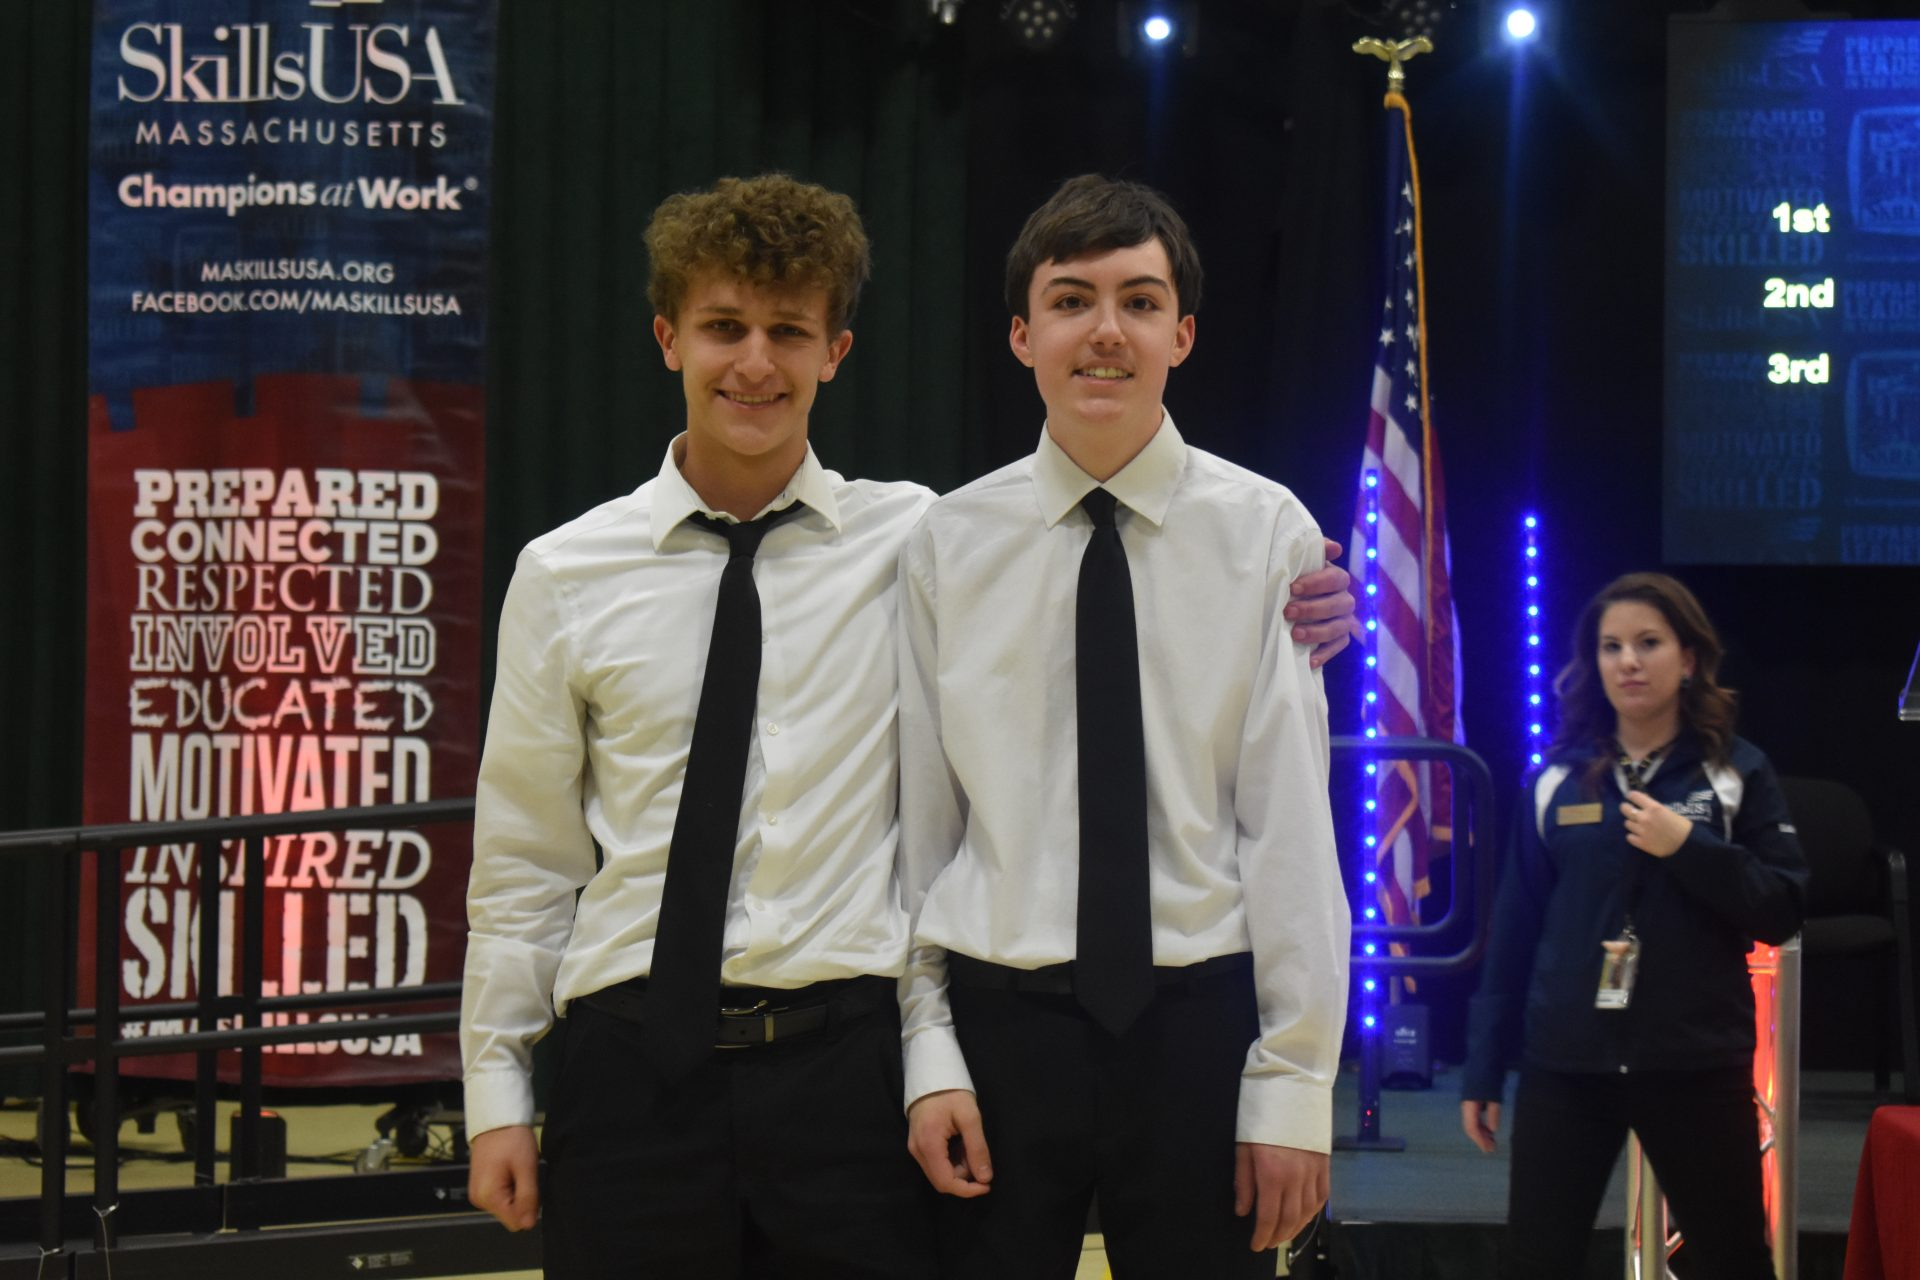 two gnb voc tech students that competed in the skills usa